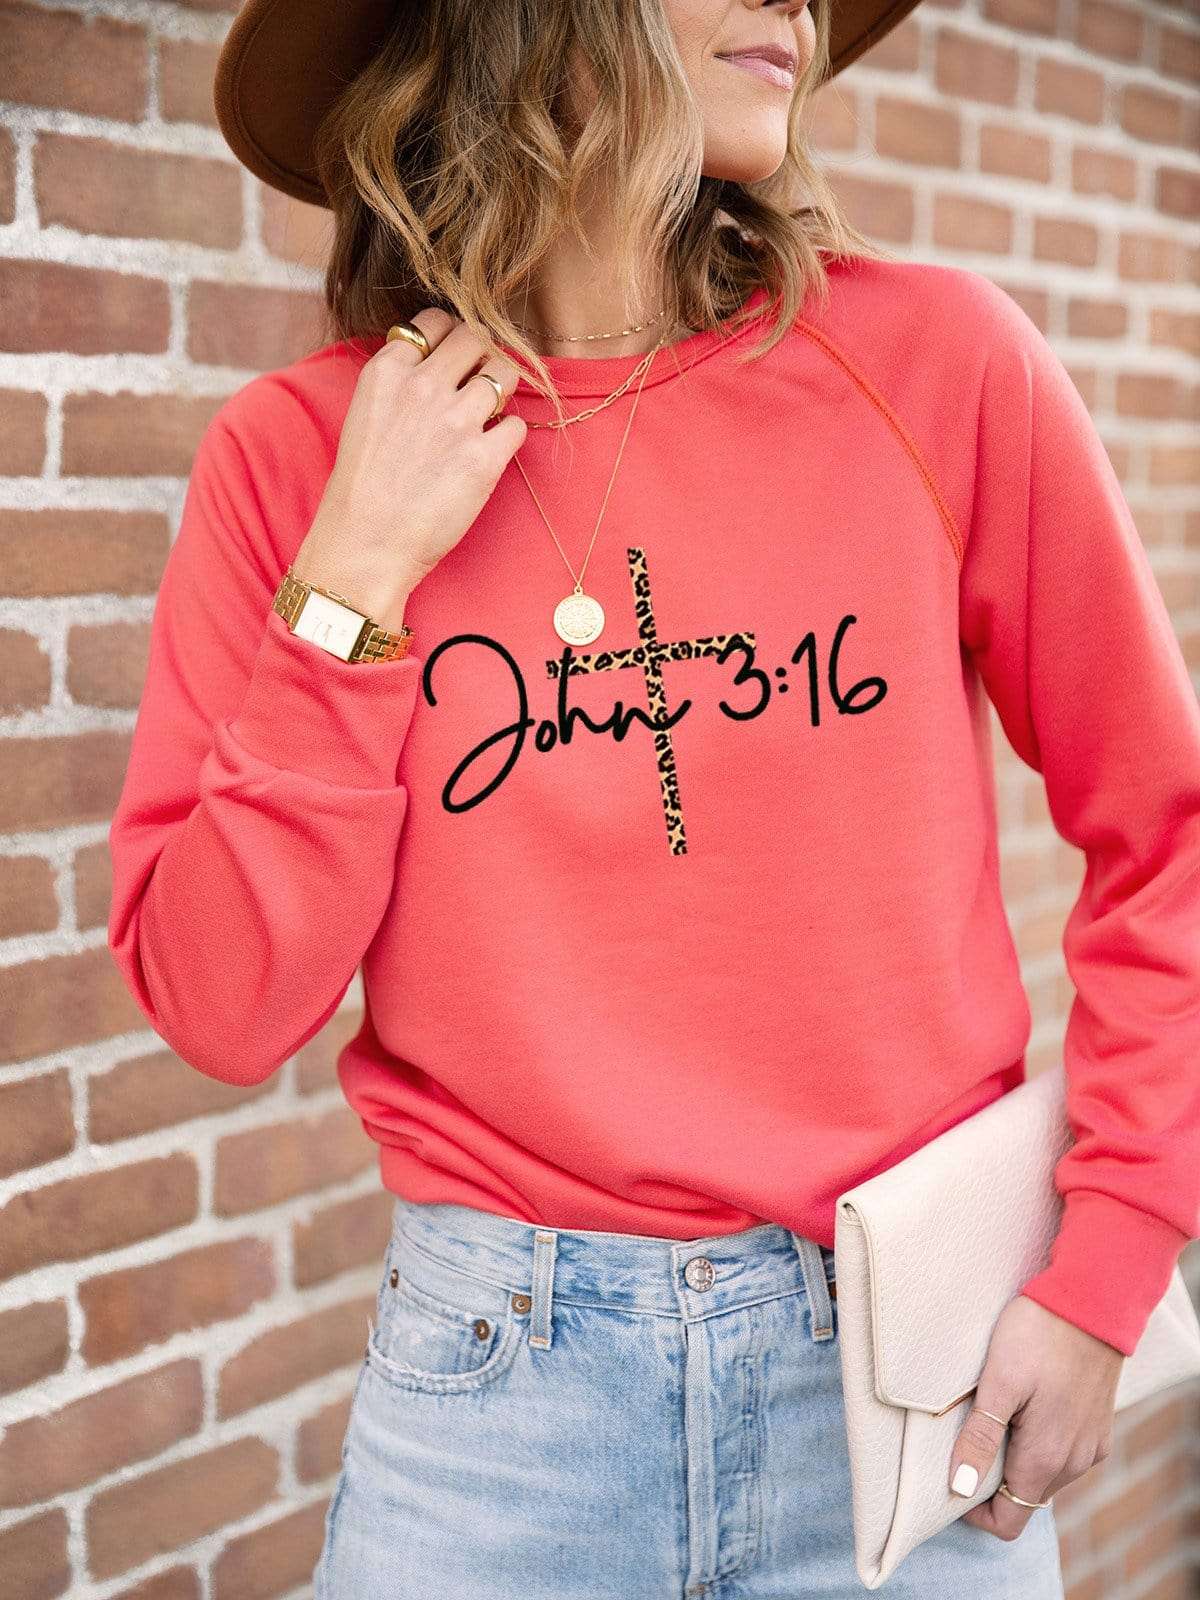 Women's John 3:16 Cross Printed Casual Top